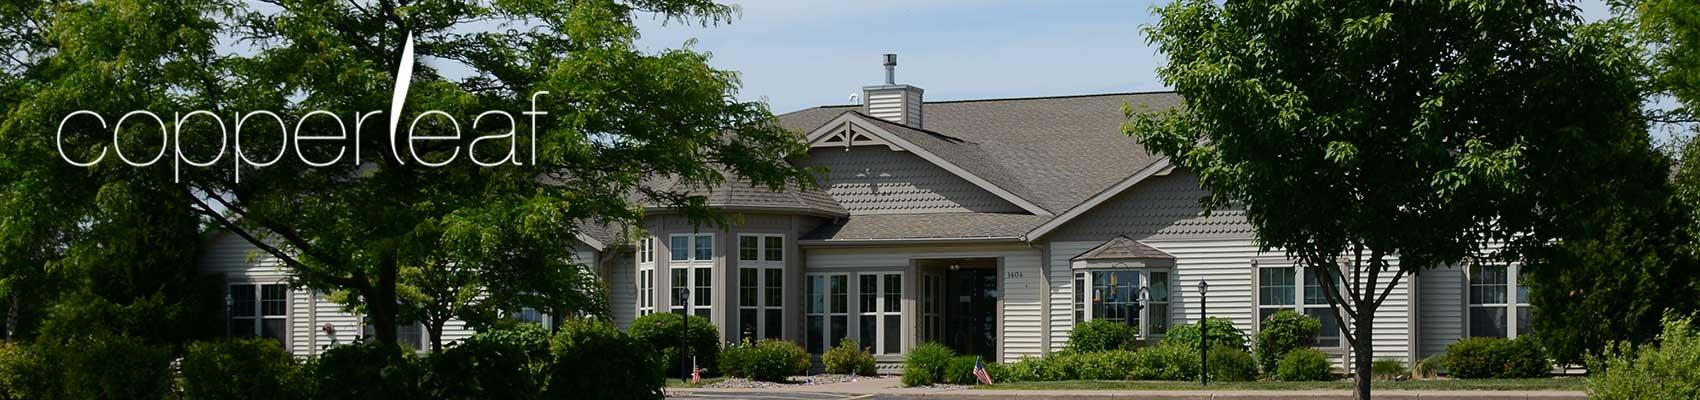 Assisted Living assisted living facilities Byron Wisconsin Fond du Lac County